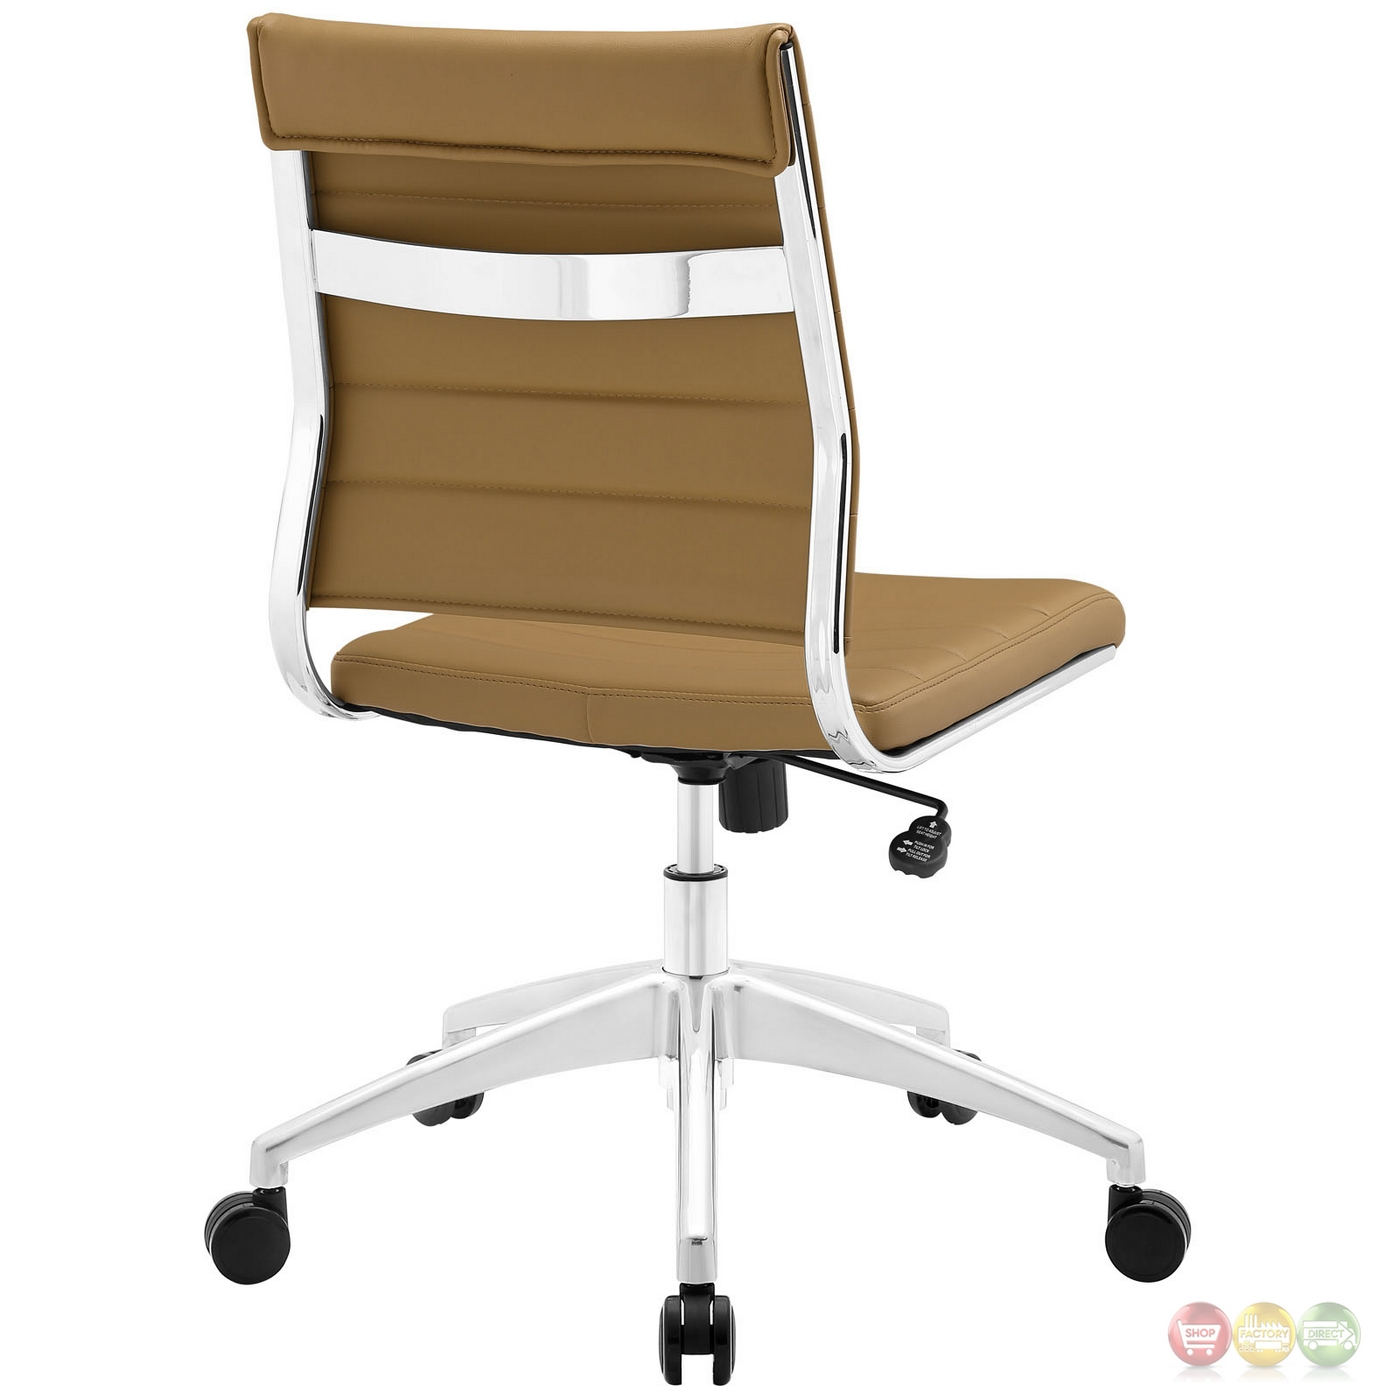 Tan Office Chair Jive Armless Upholstered Ribbed Vinyl Mid Back Office